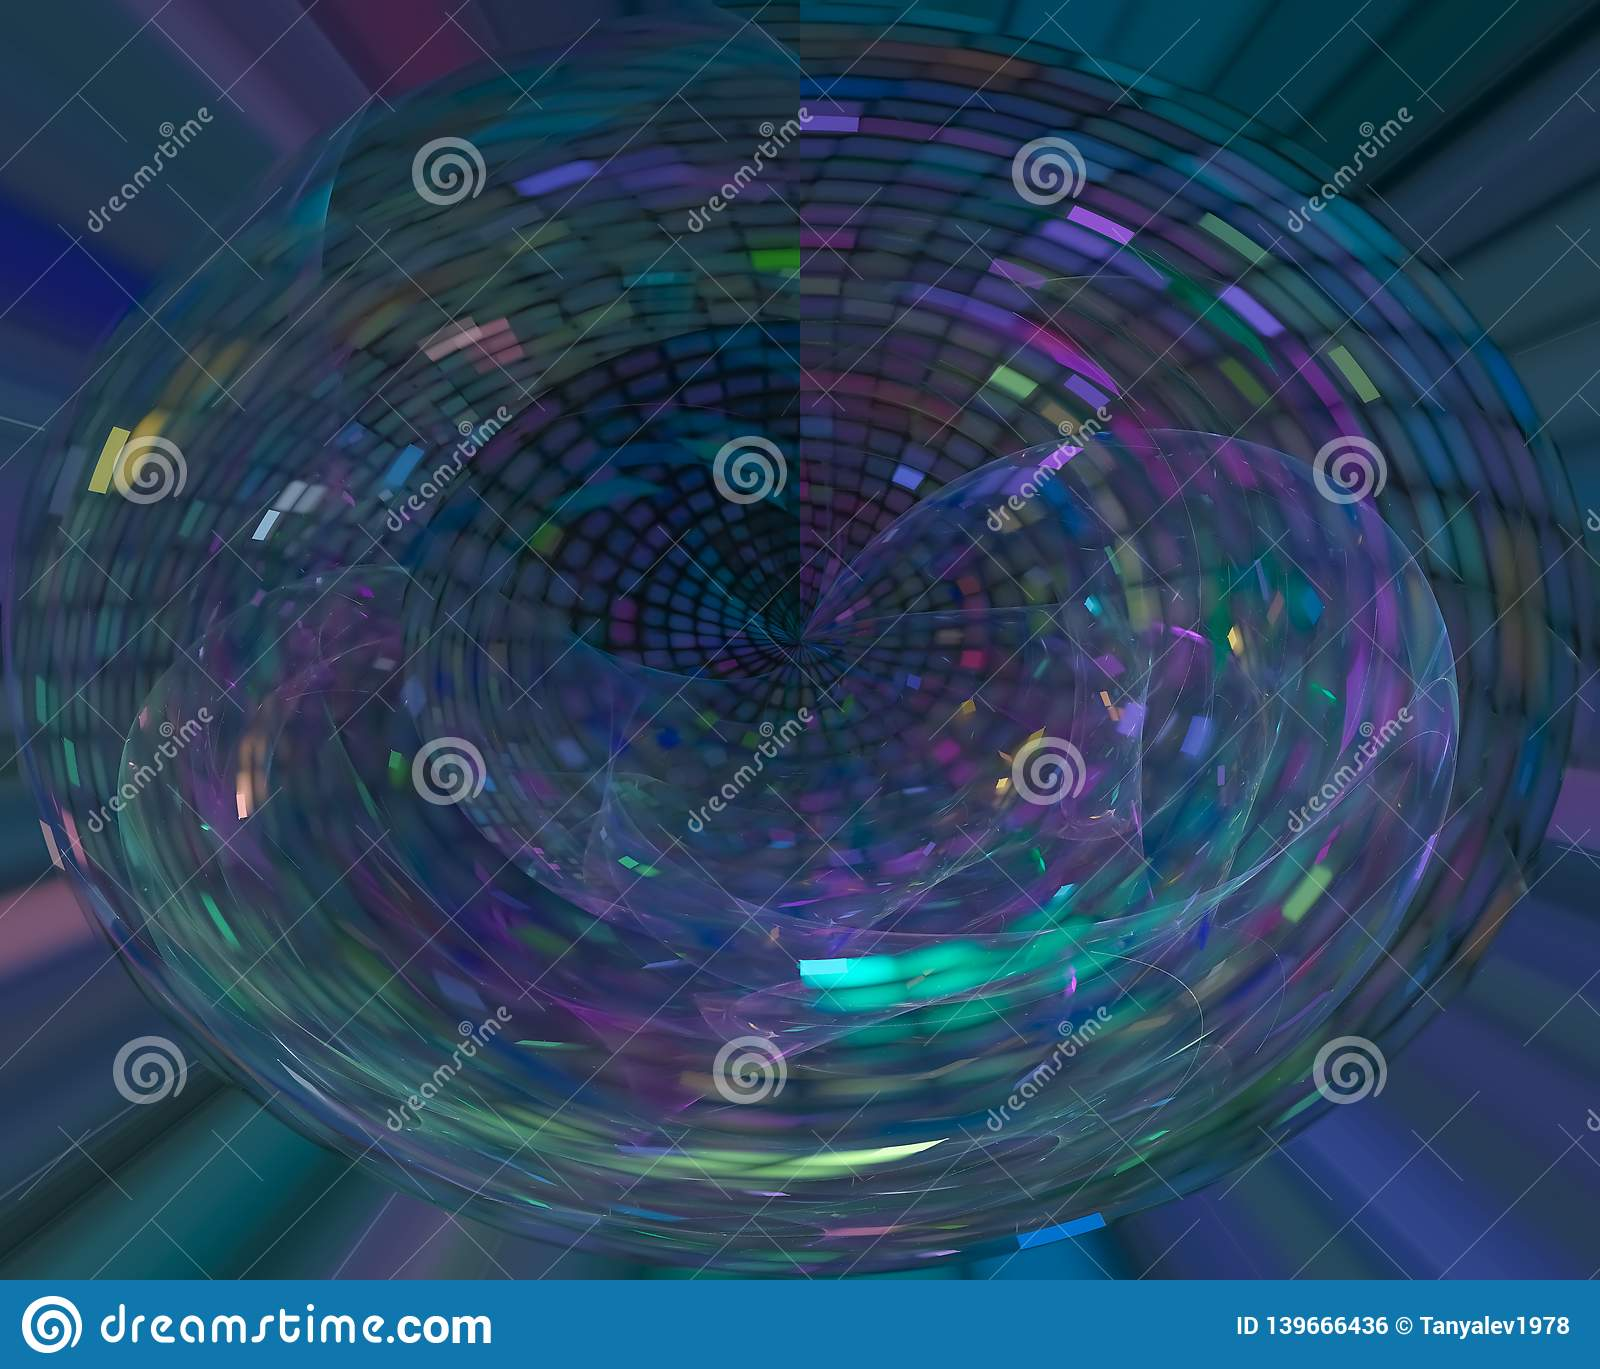 Abstract science dynamic fantasy design energy template curve fractal, texture beautiful design shiny, flare shape , decoration